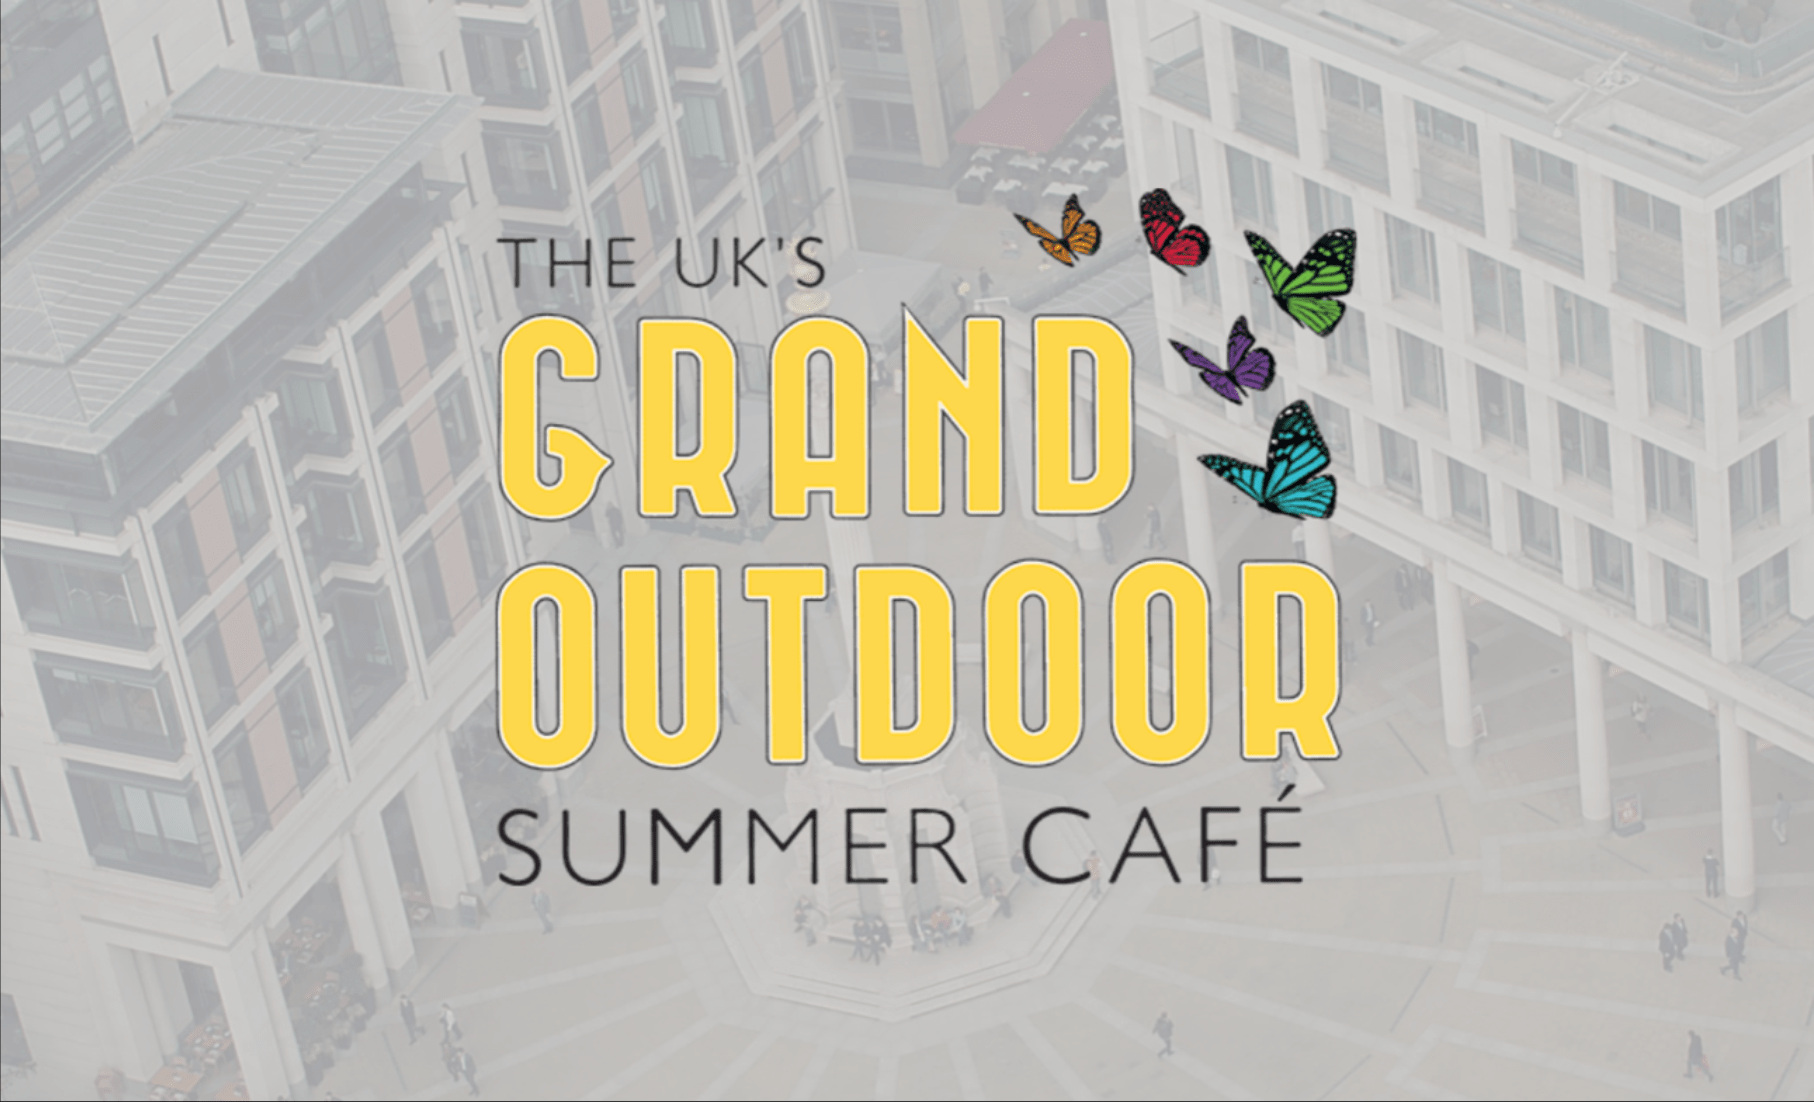 What is the UK Grand Summer Outdoor Cafe?